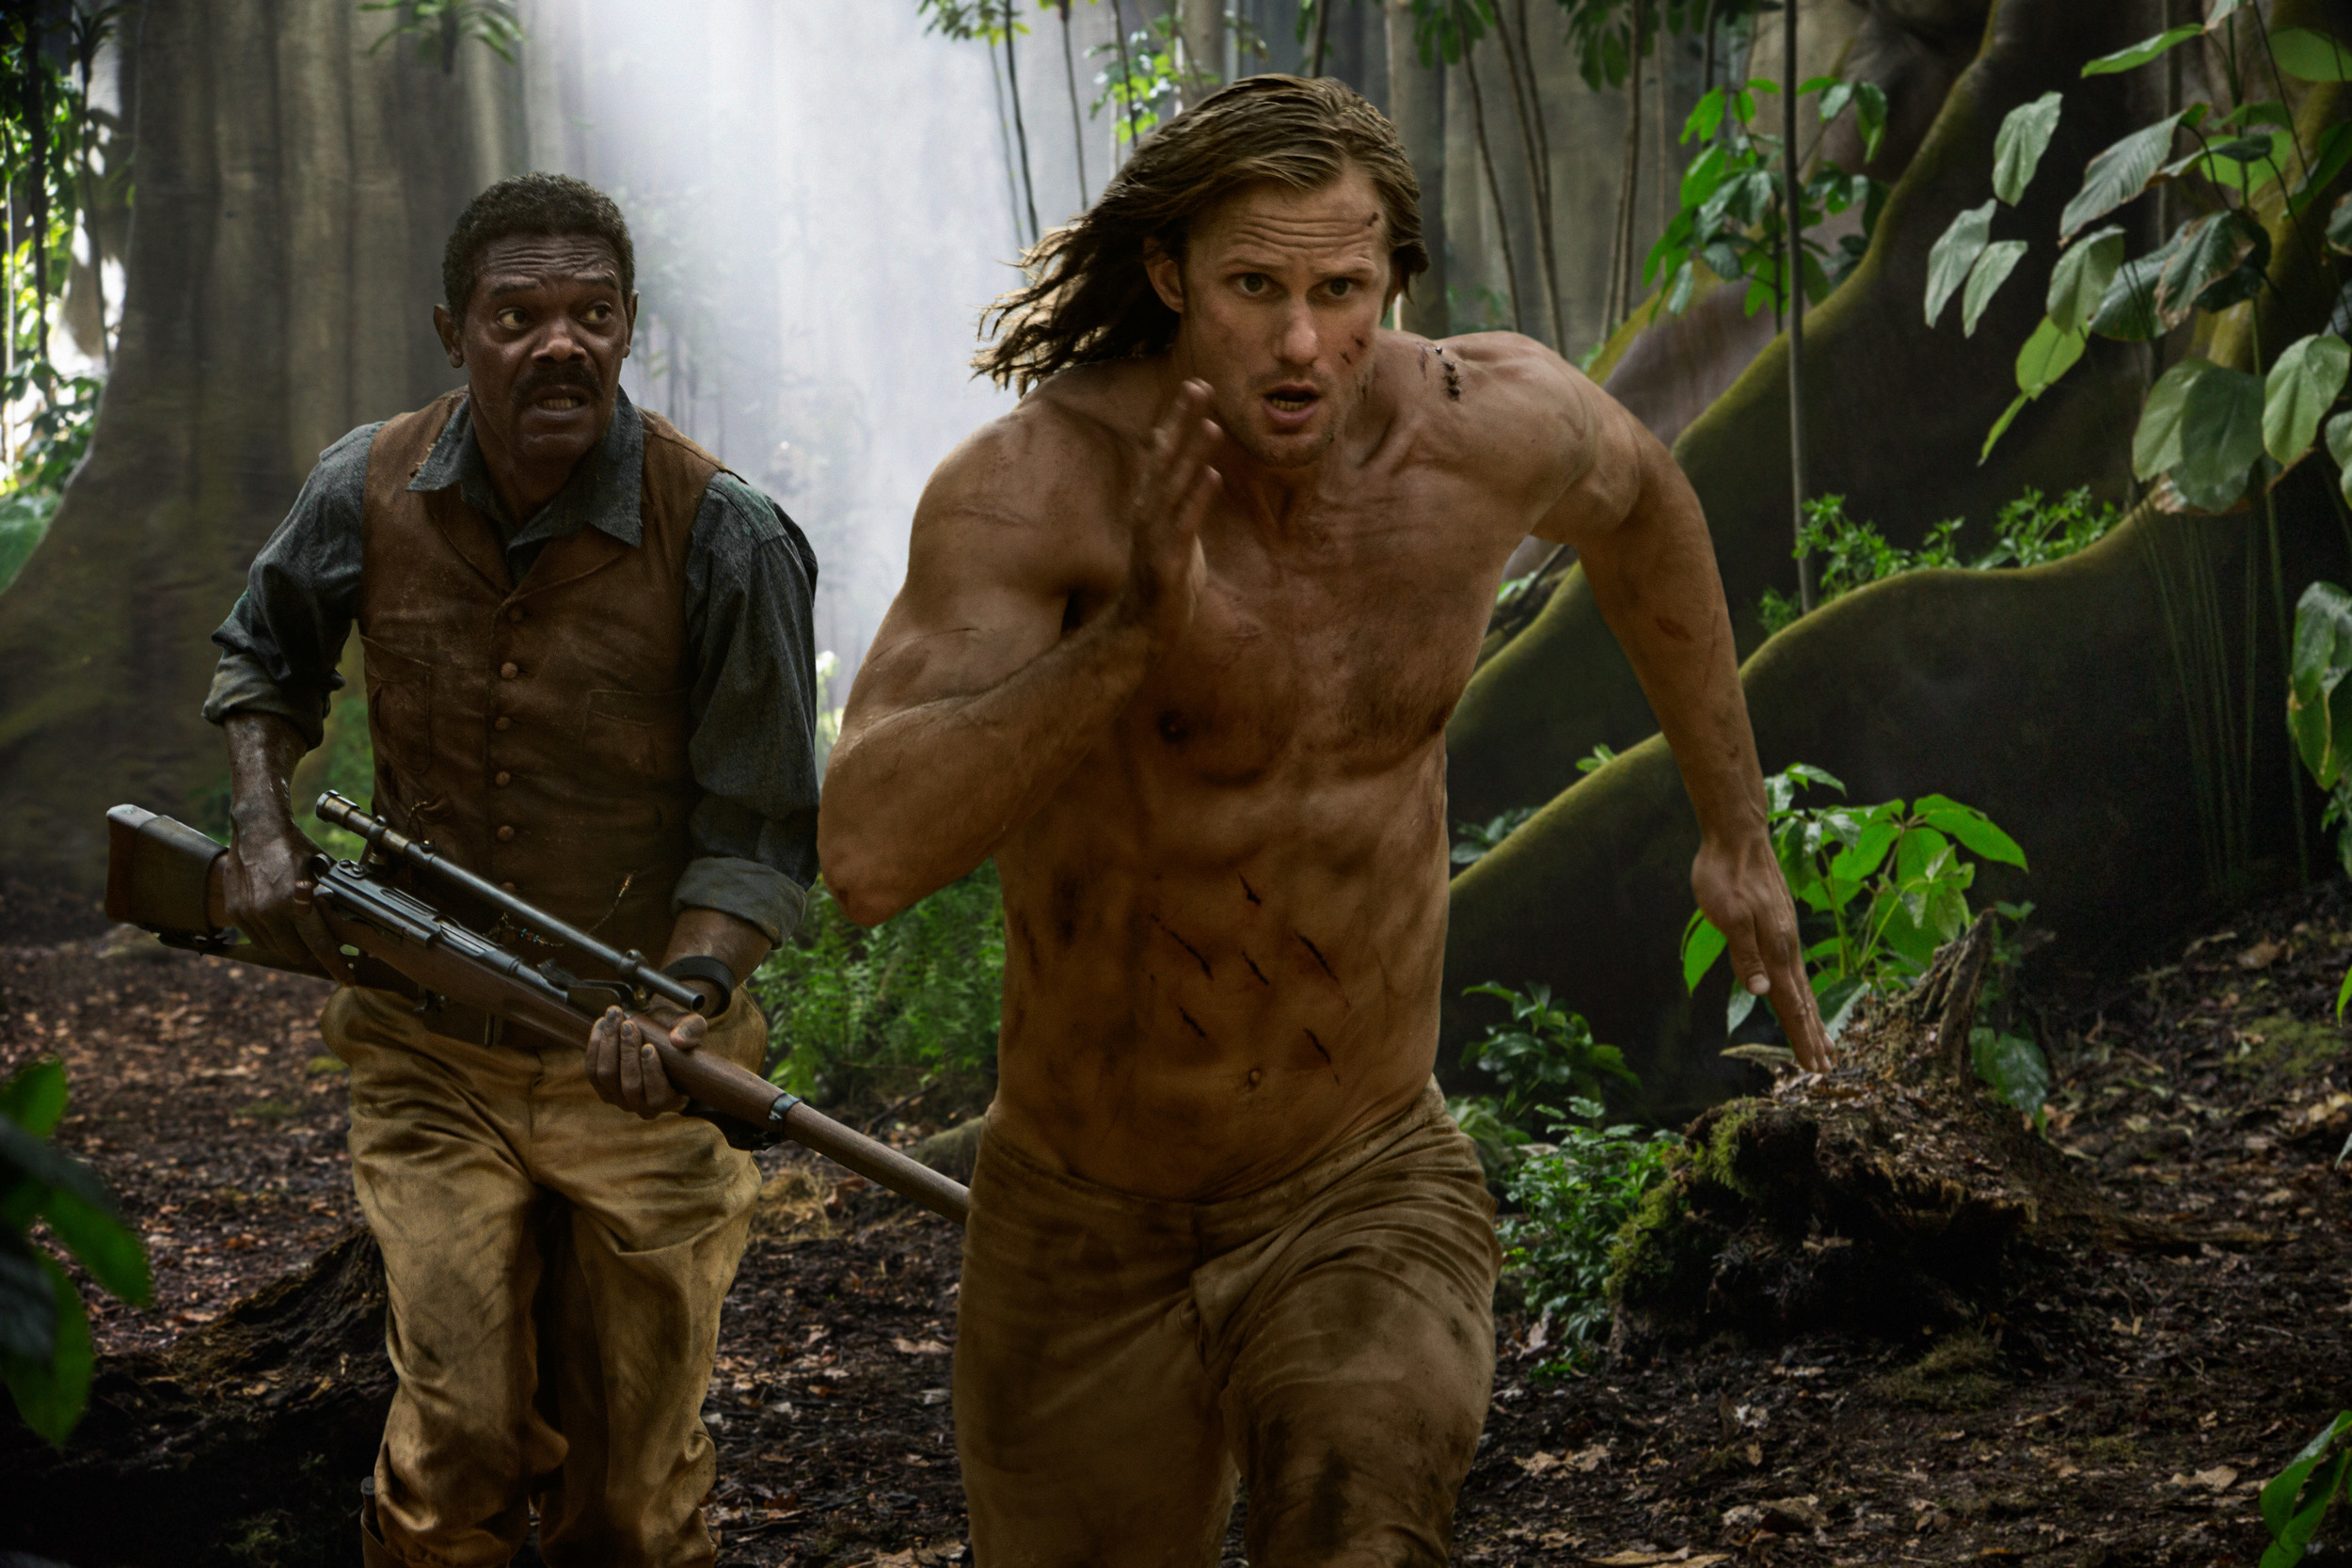 Samuel L. Jackson as real-life Renaissance man George Washington Williams, with Alexander Skarsgård as fictional he-man  Tarzan.  (Jonathan Olley)